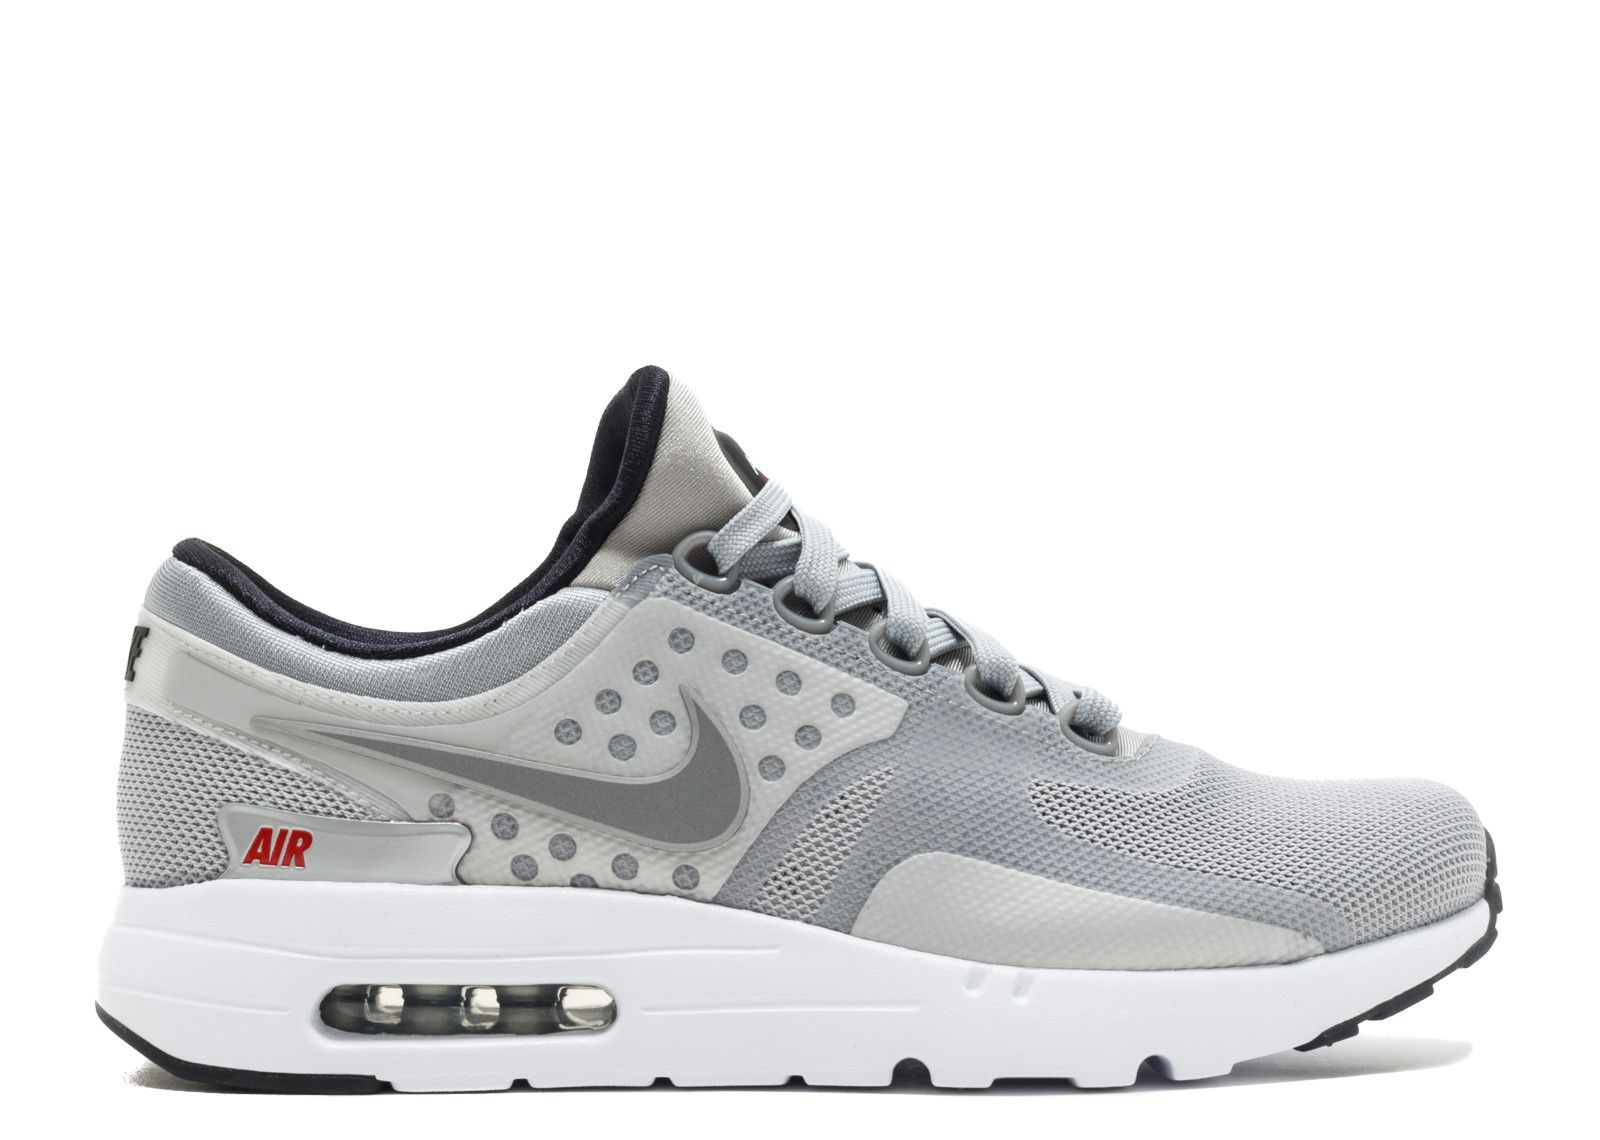 quality design 5e4bc 5cfc5 Air Max Zero QS in 2019 | My type of shoes/sneakers | Sneakers nike ...